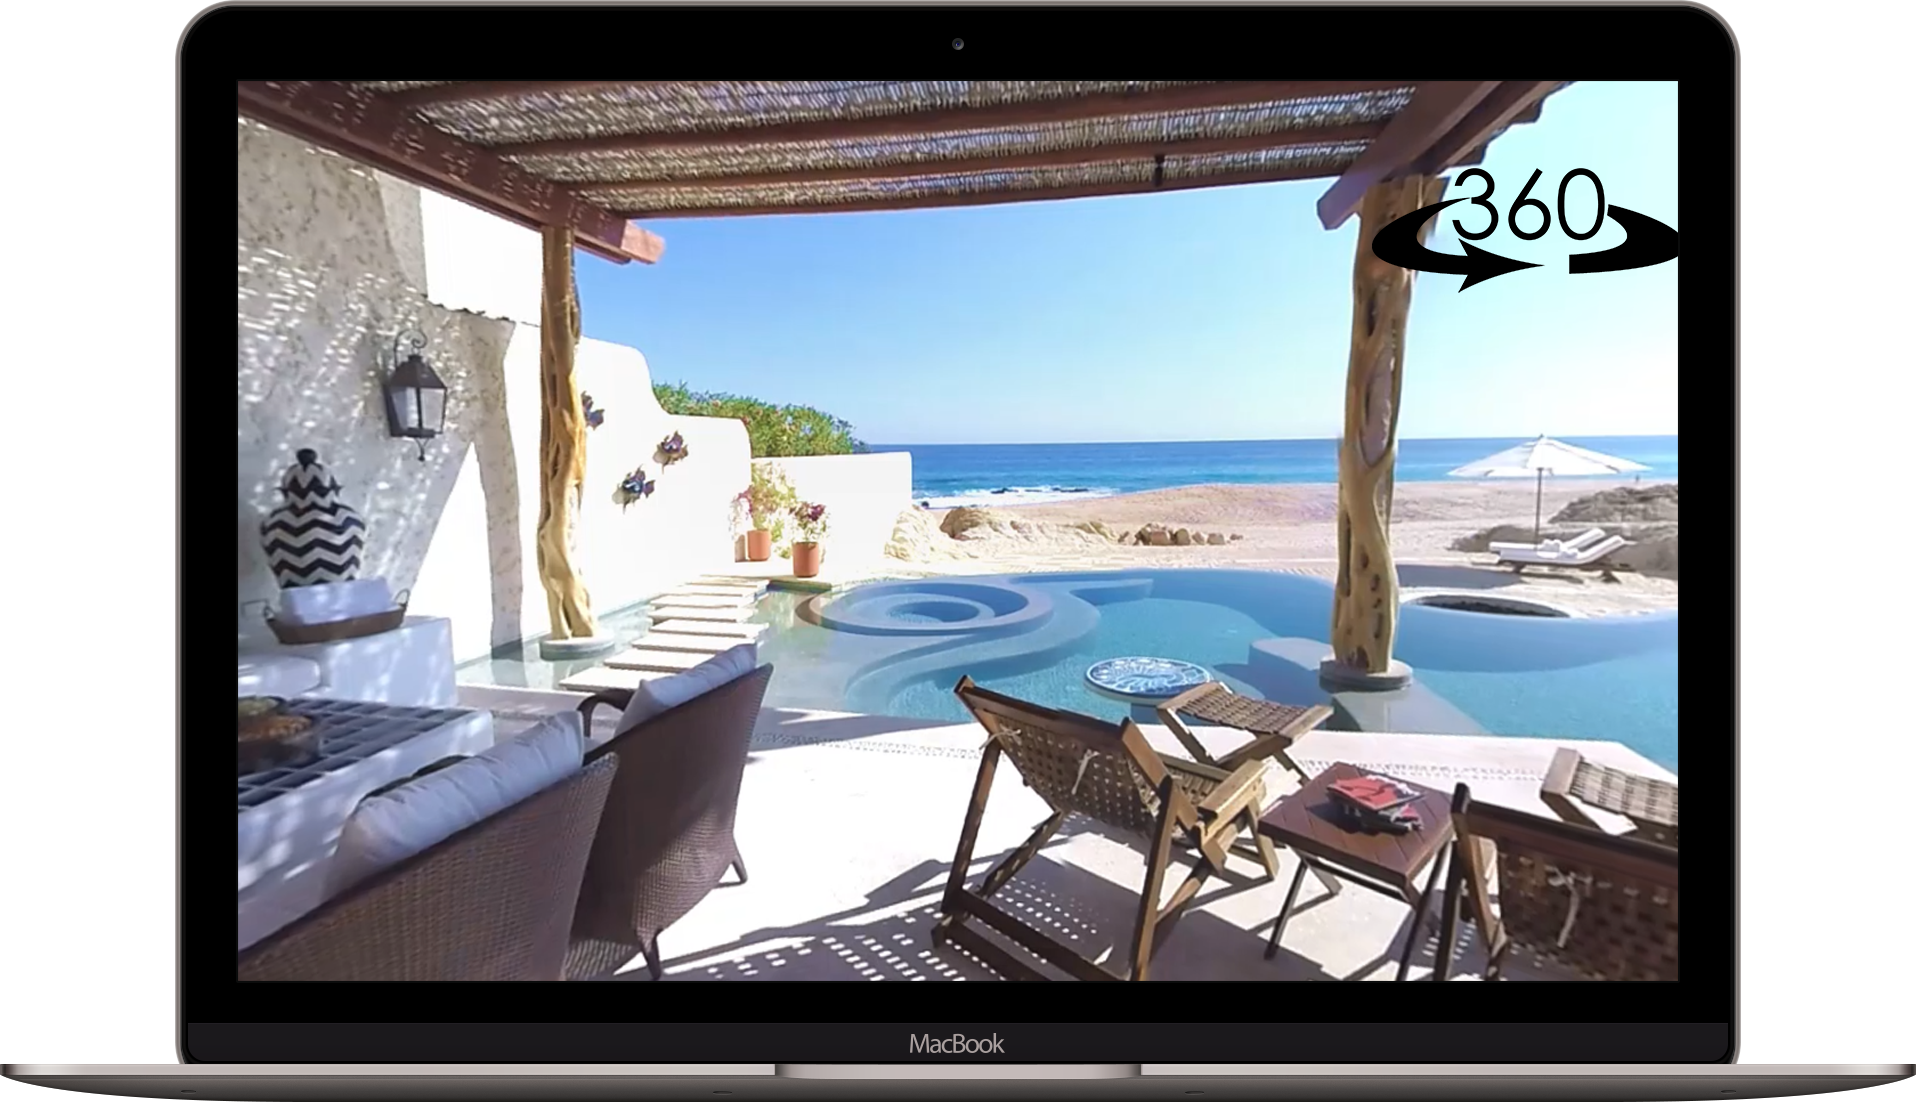 360 Video on Macbook/laptops